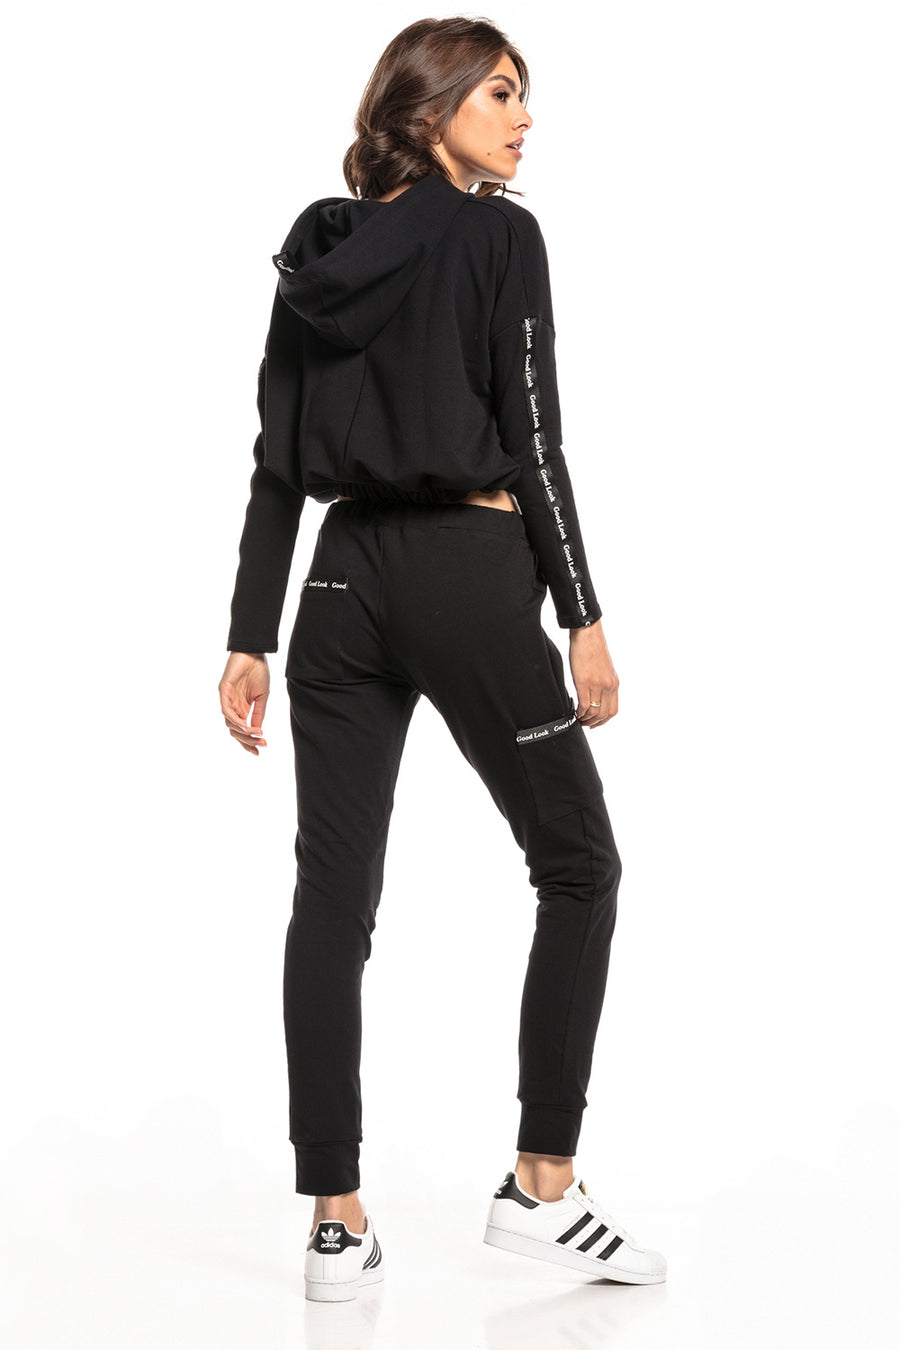 Tracksuit trousers model 148157 Tessita